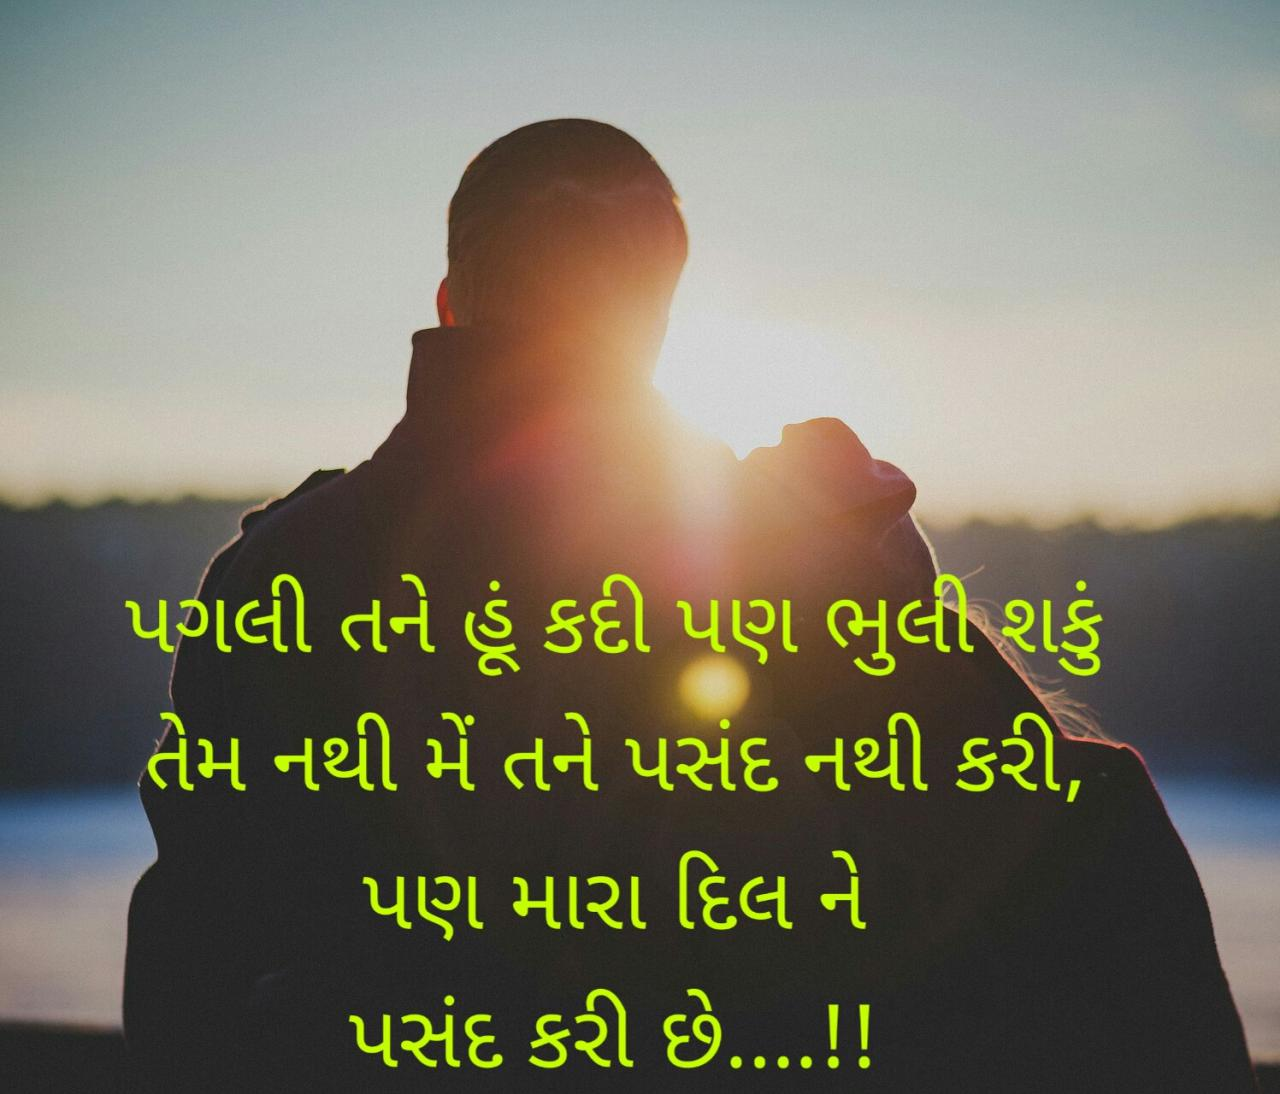 The Best For Gujarati Love Shayari For Girlfriend To Very Nice Profile Image